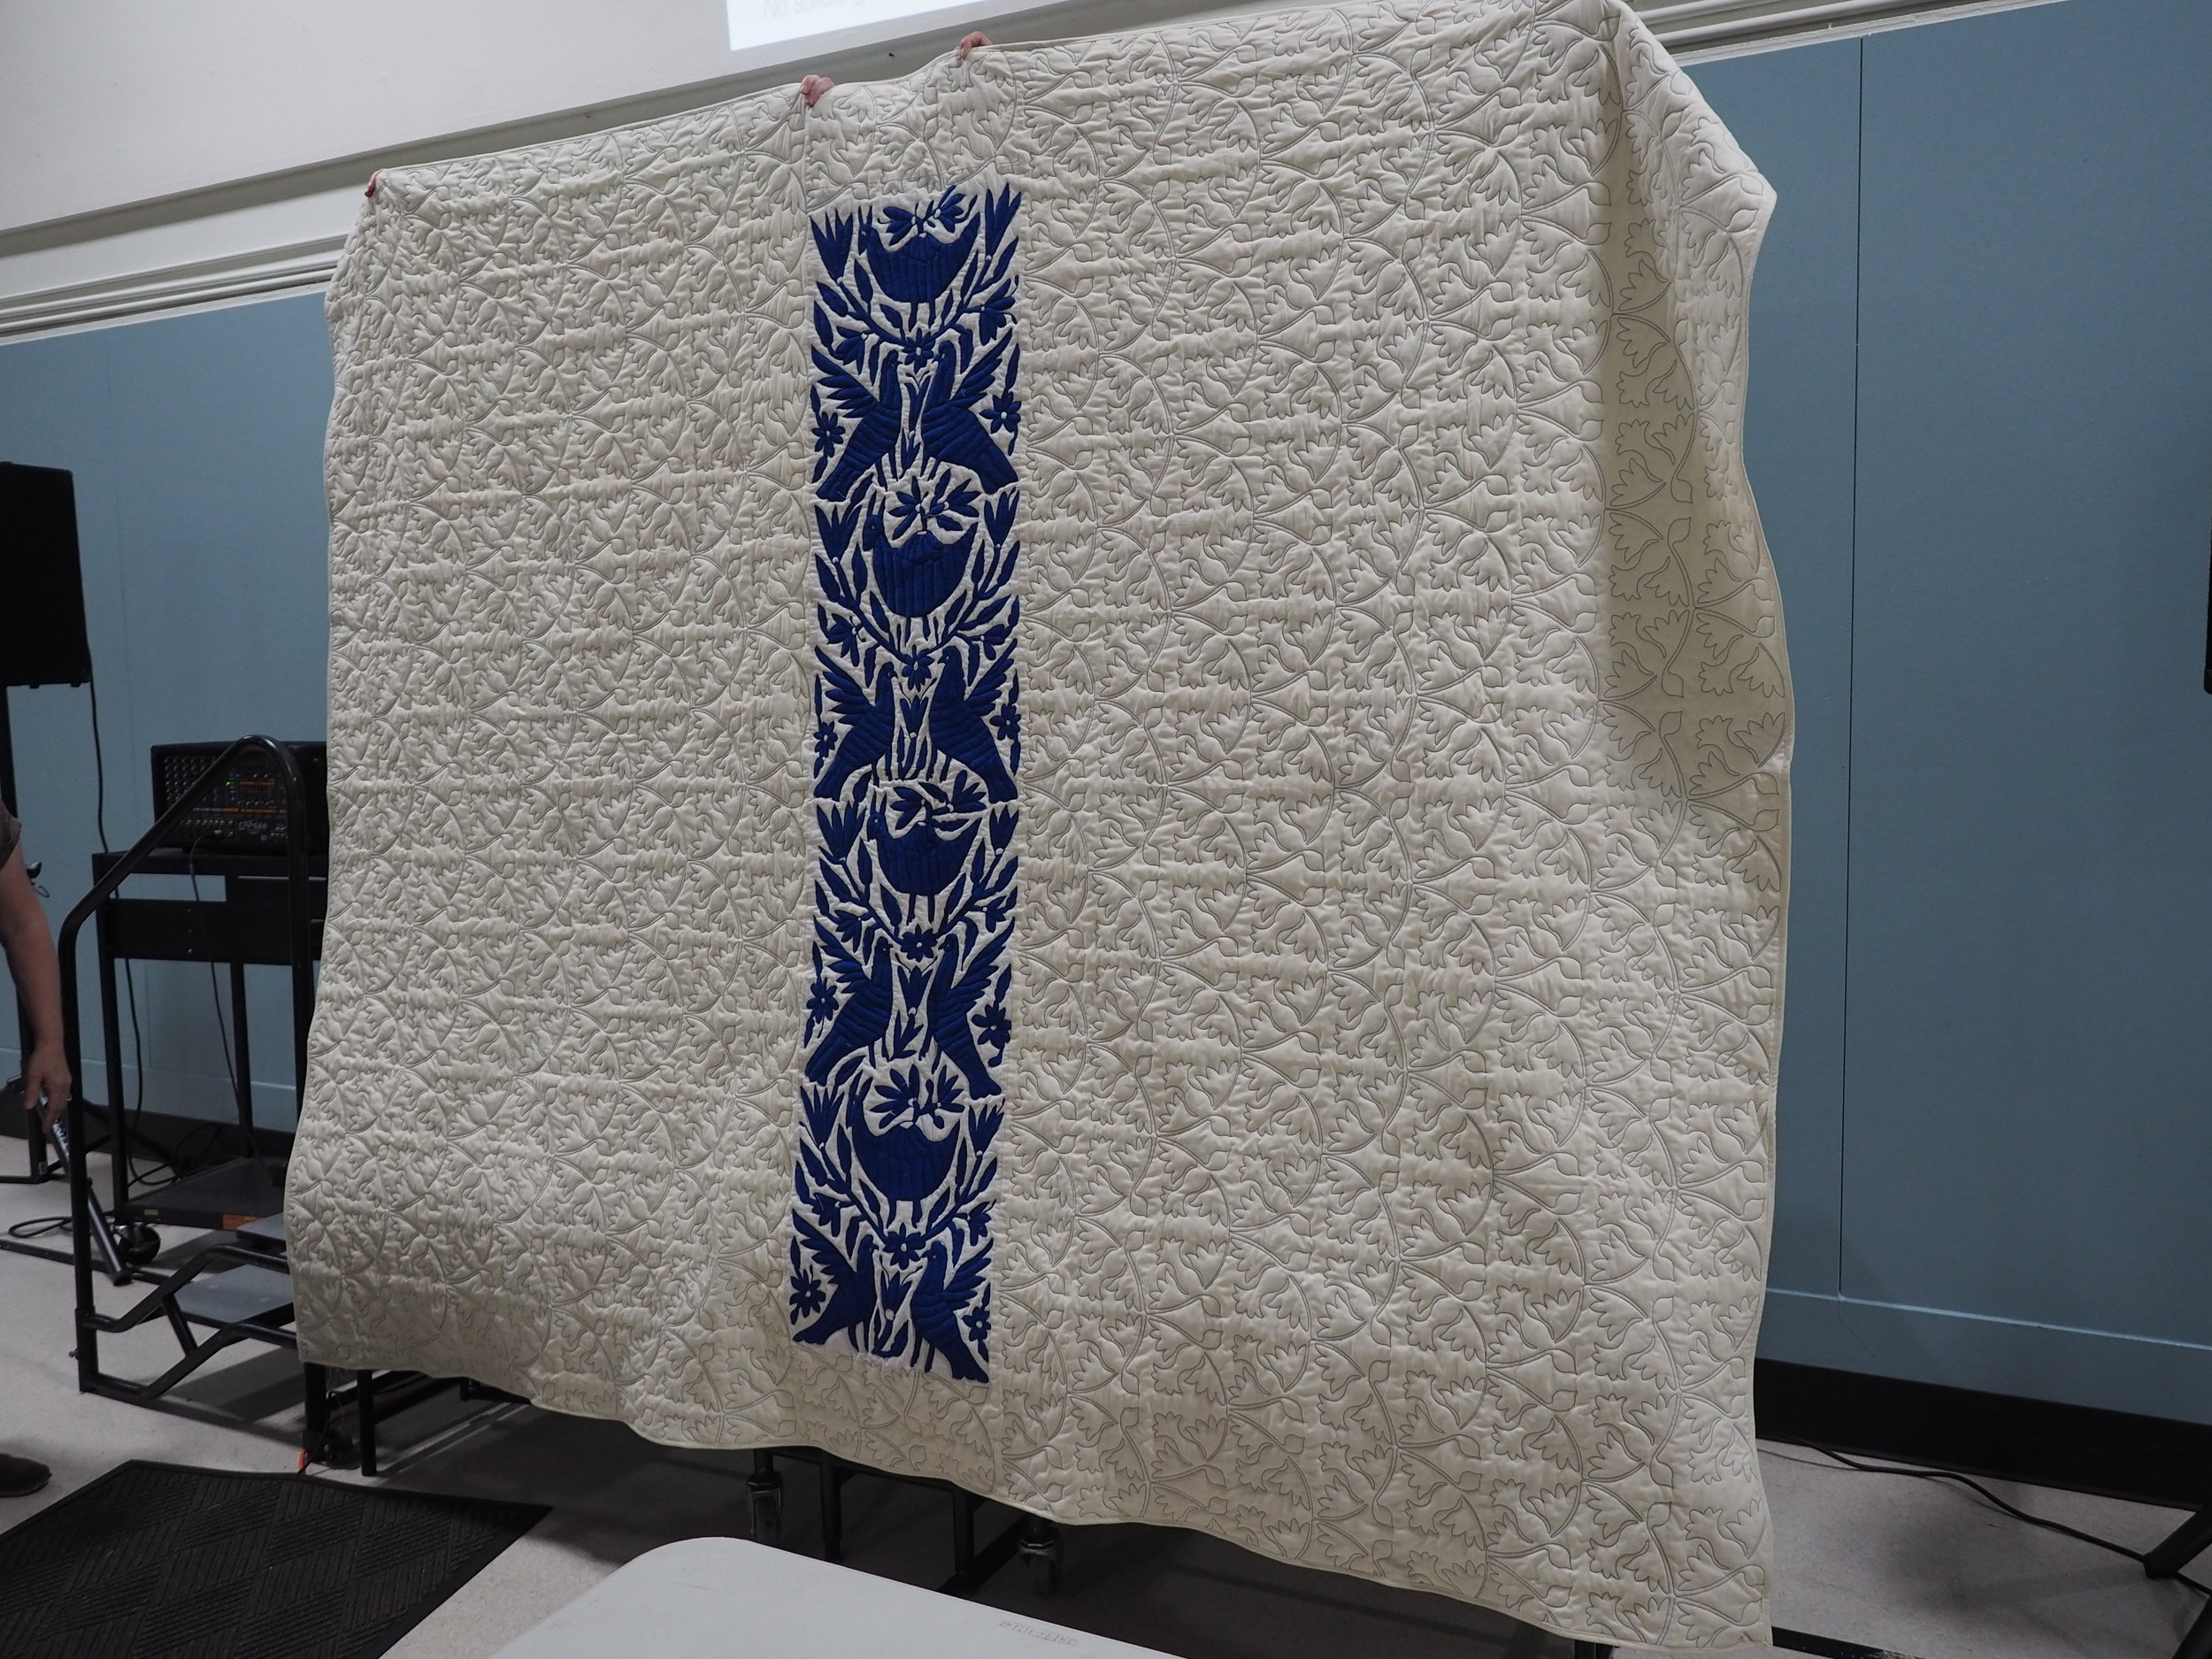 Michael's Quilt by Eliza Corcoran